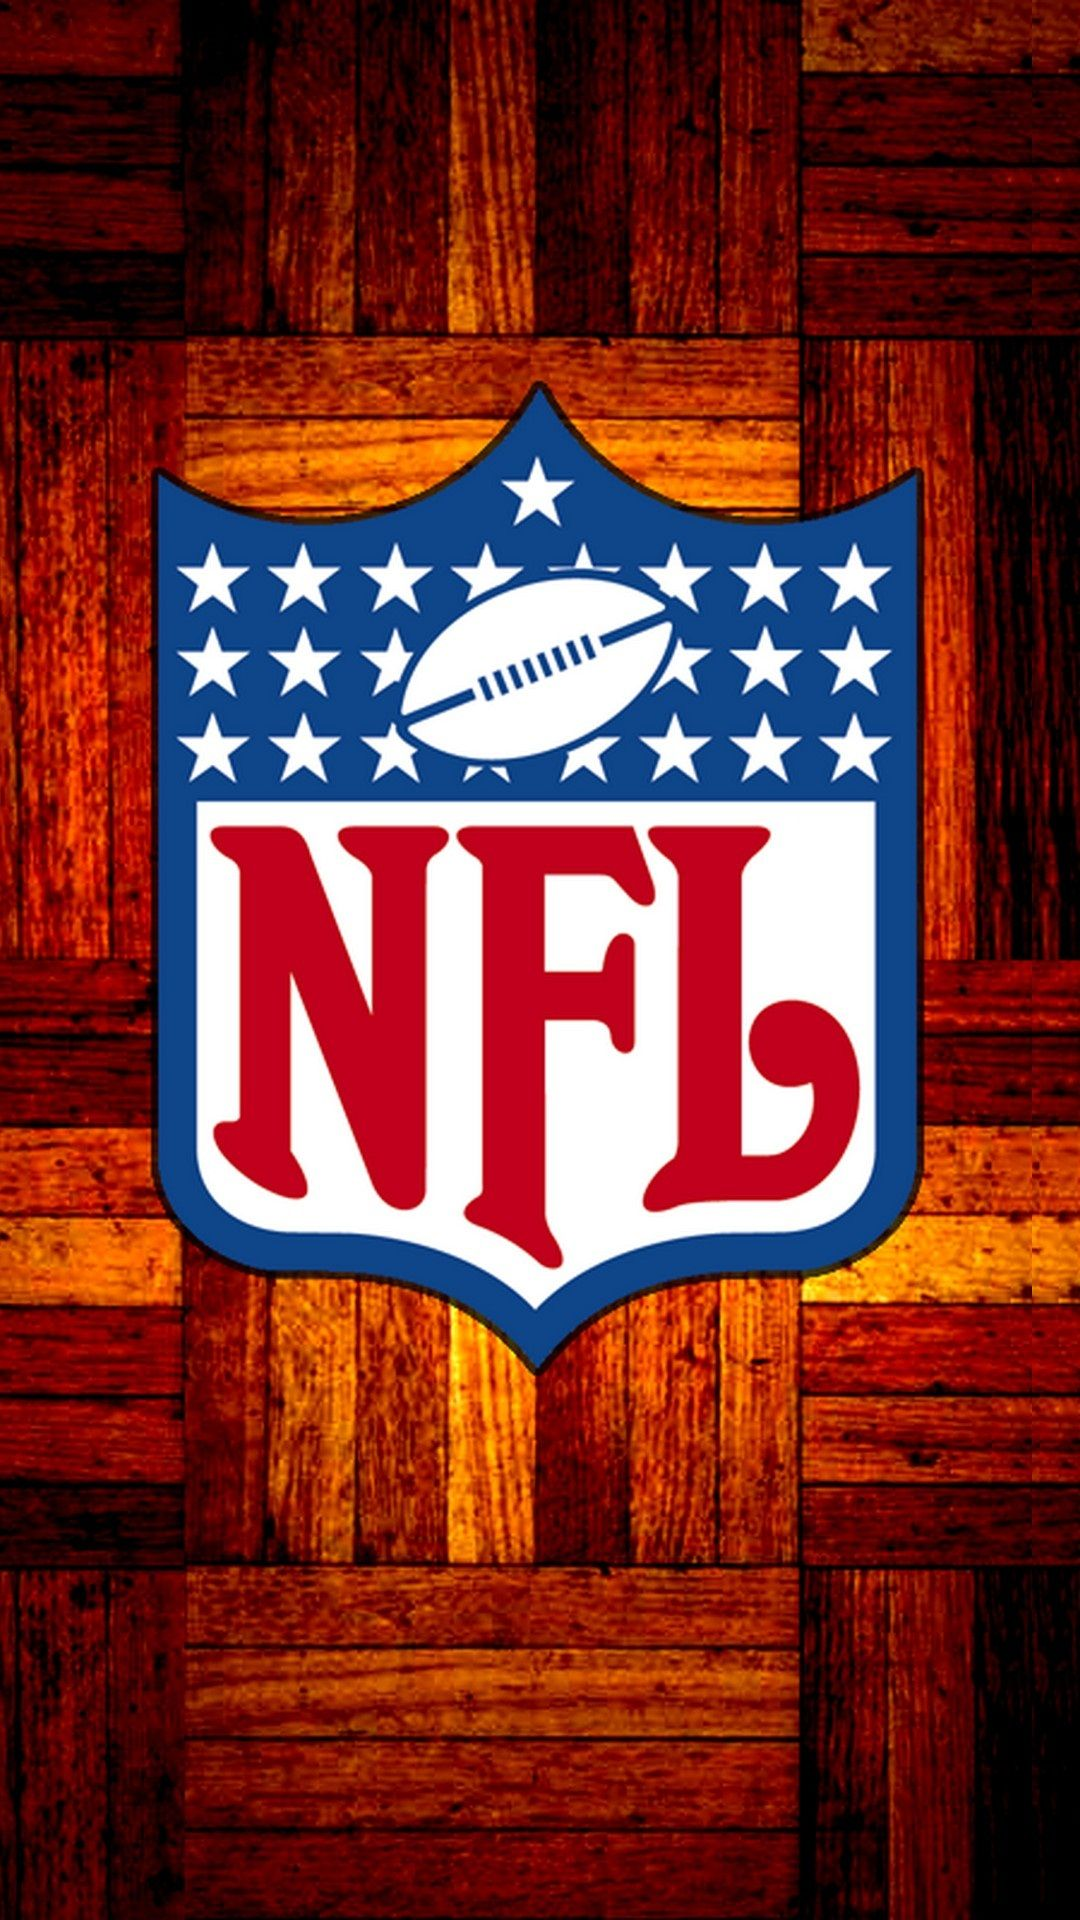 NFL HD Wallpaper For iPhone Hd wallpaper iphone, Coffee